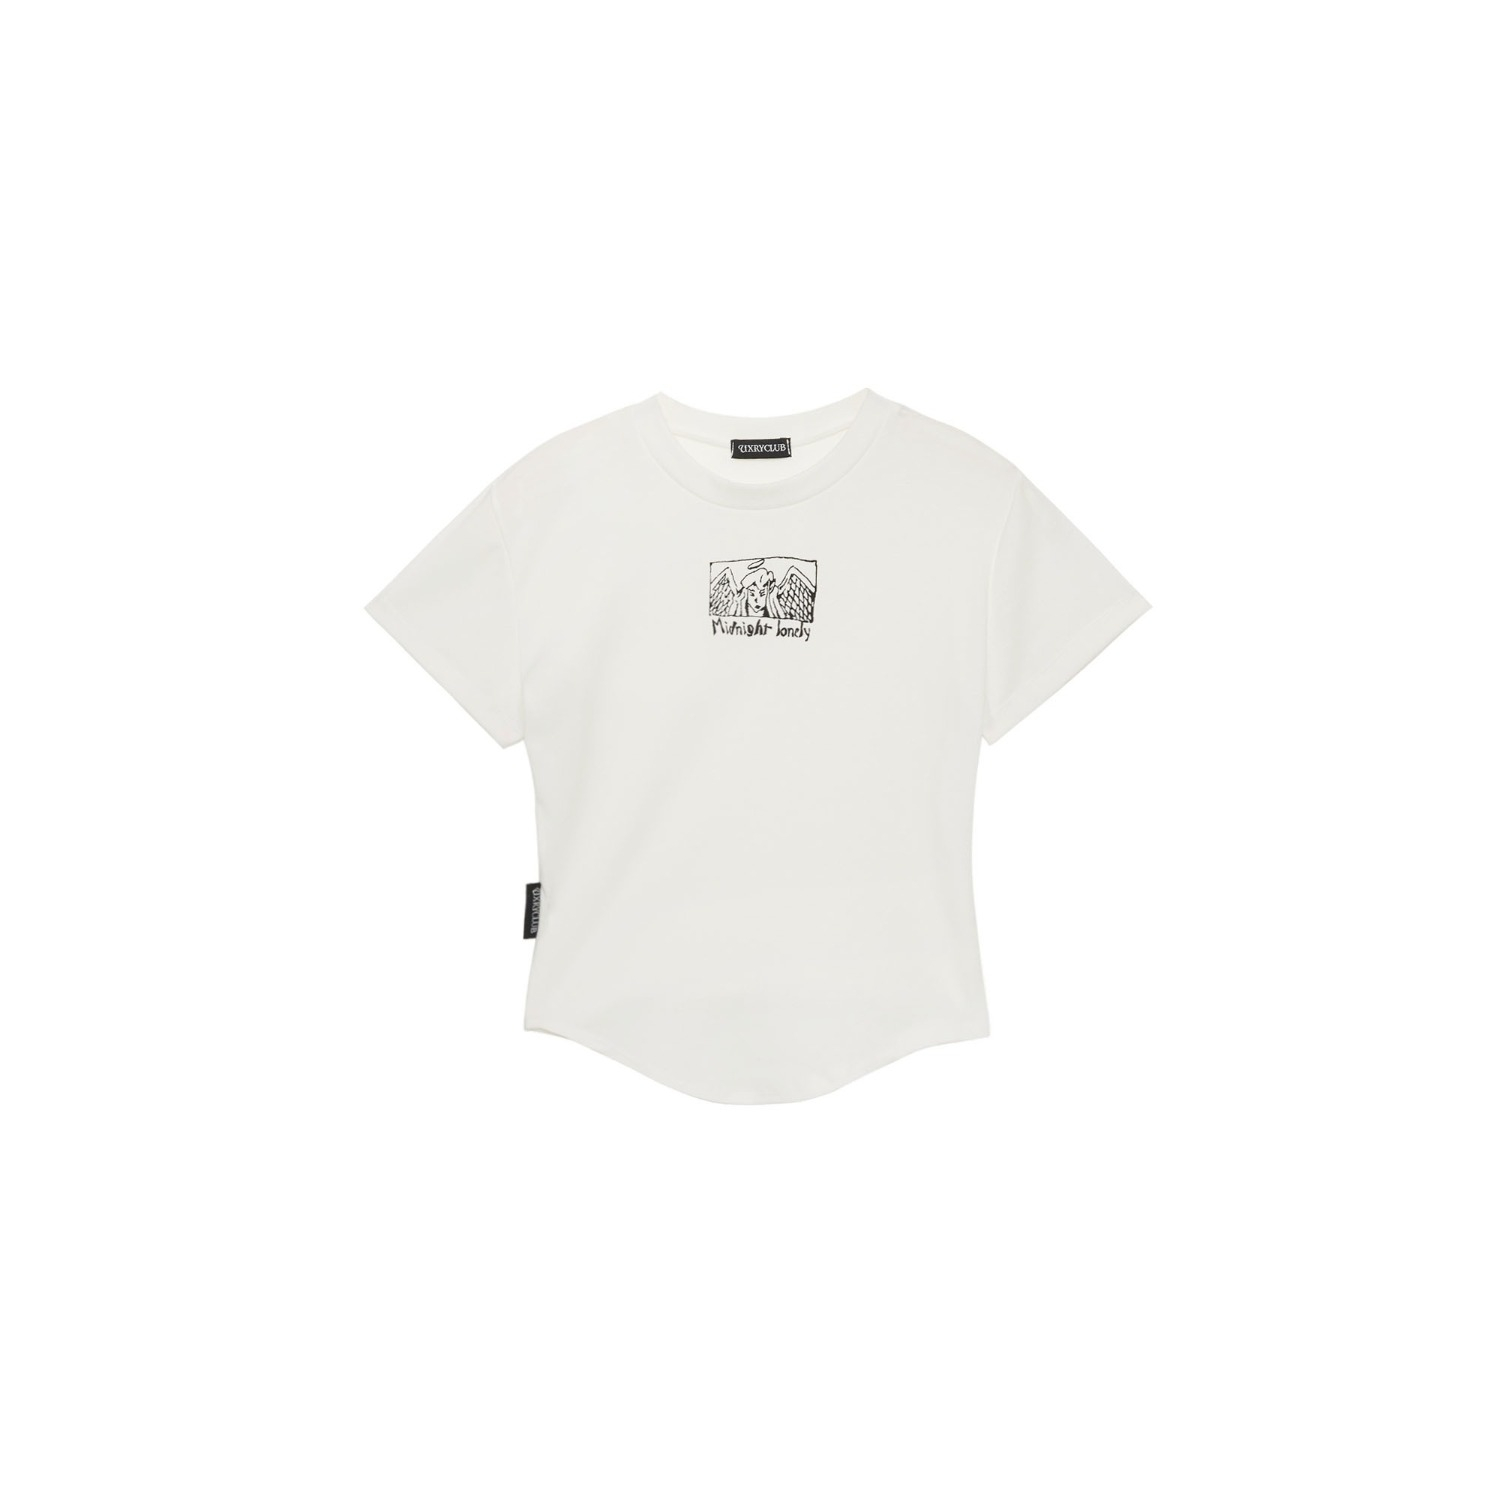 Witch Craft Baby Tee (White)